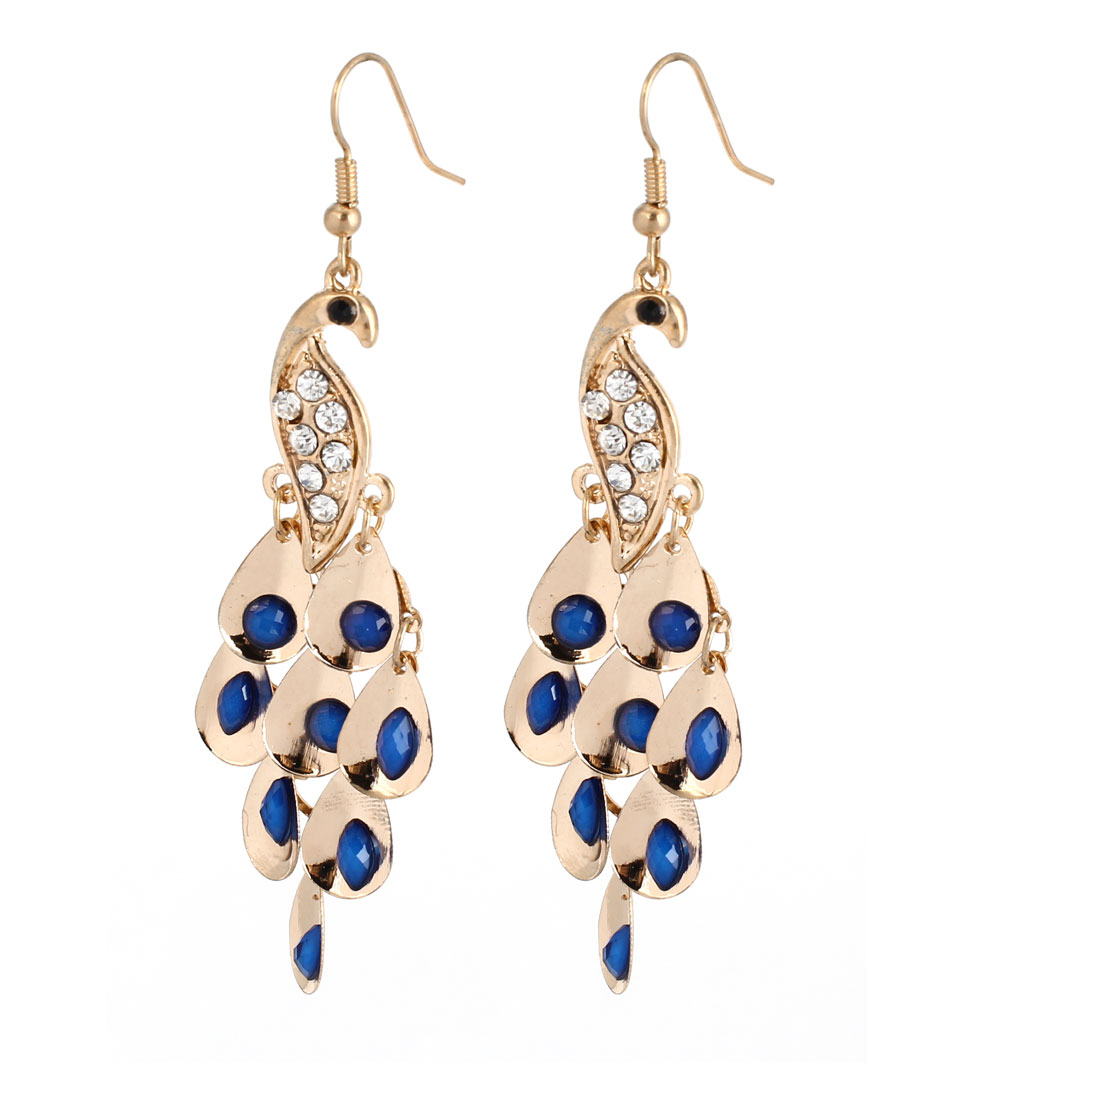 Blue Faceted Beads Accent Peacock Shape Pendant Hook Earrings Gold Tone Pair for Lady